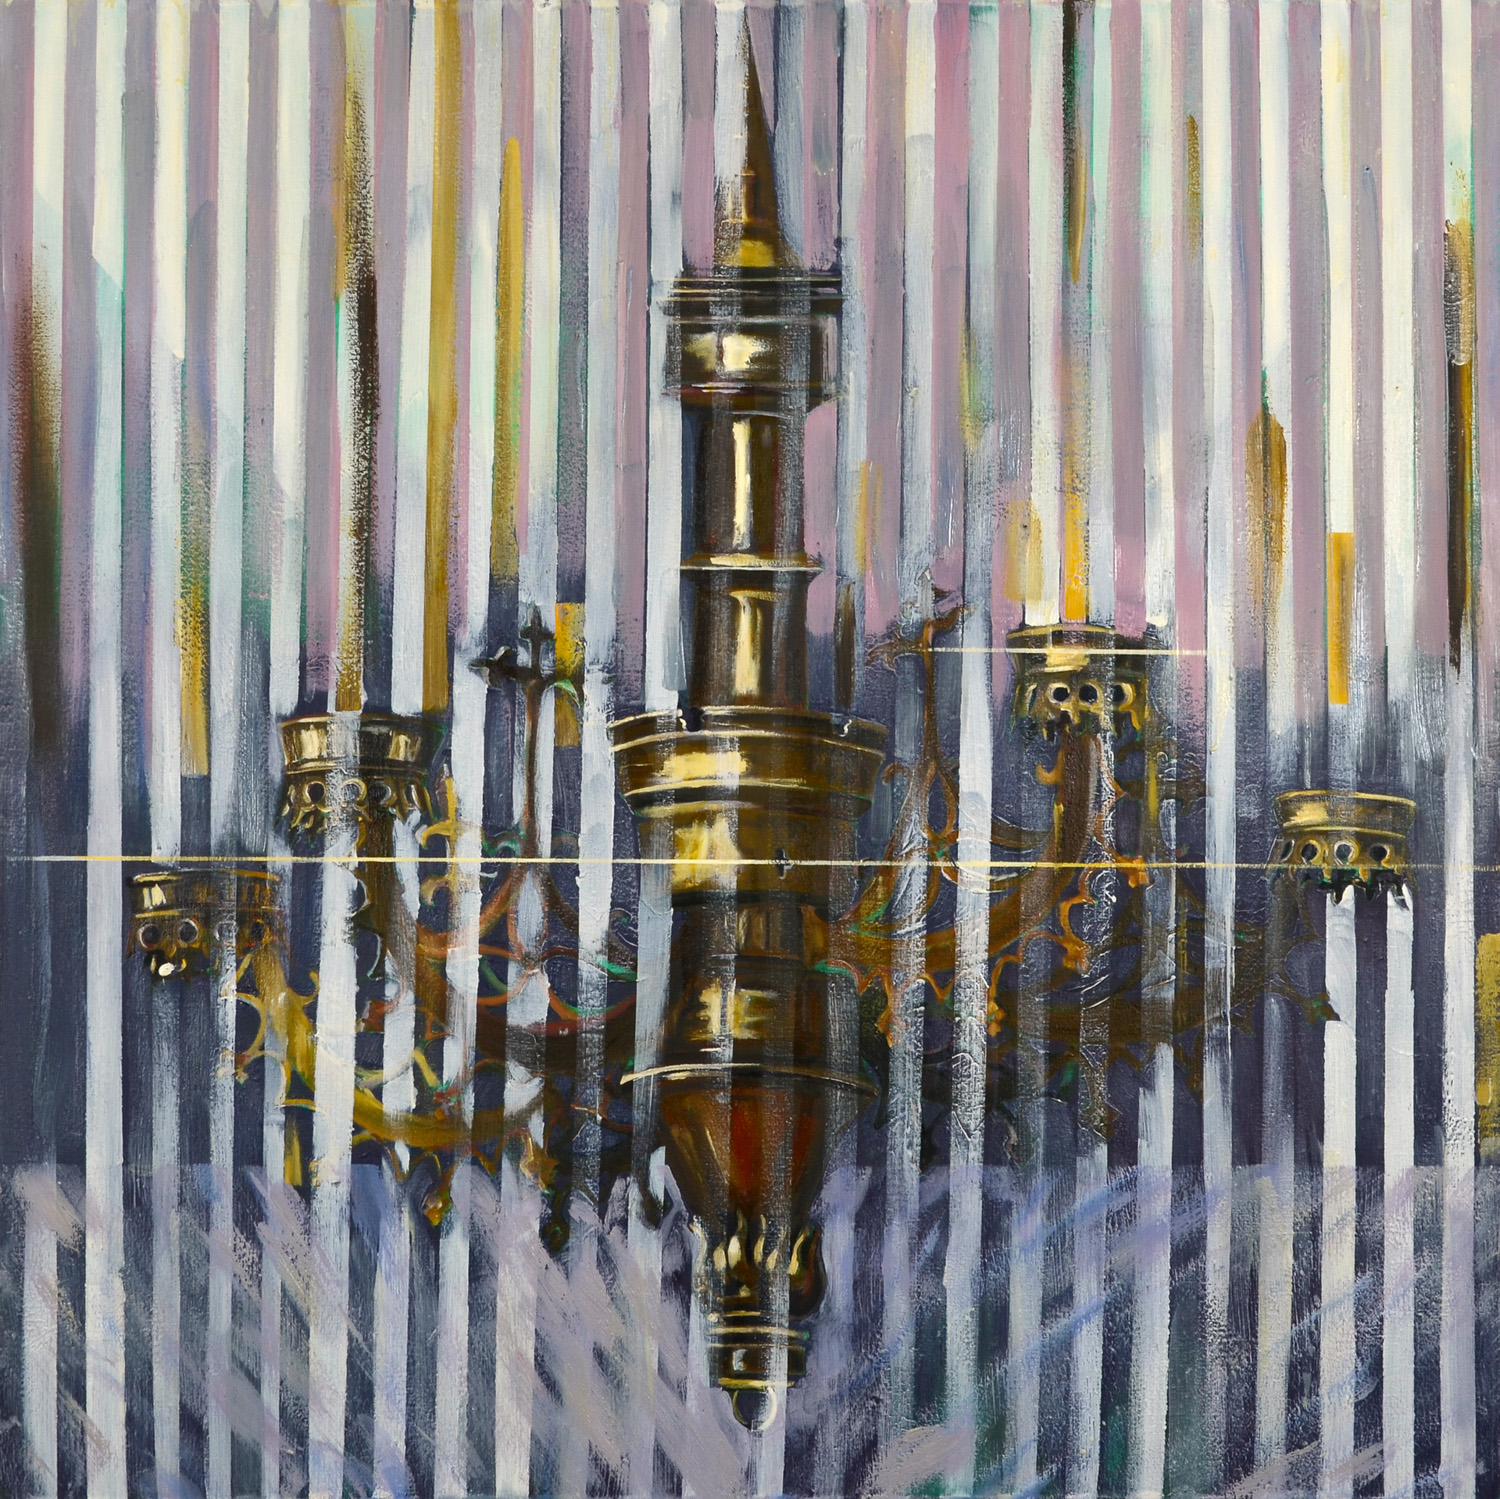 Chandelier II, Oil on canvas, 100x100 cm, 2012